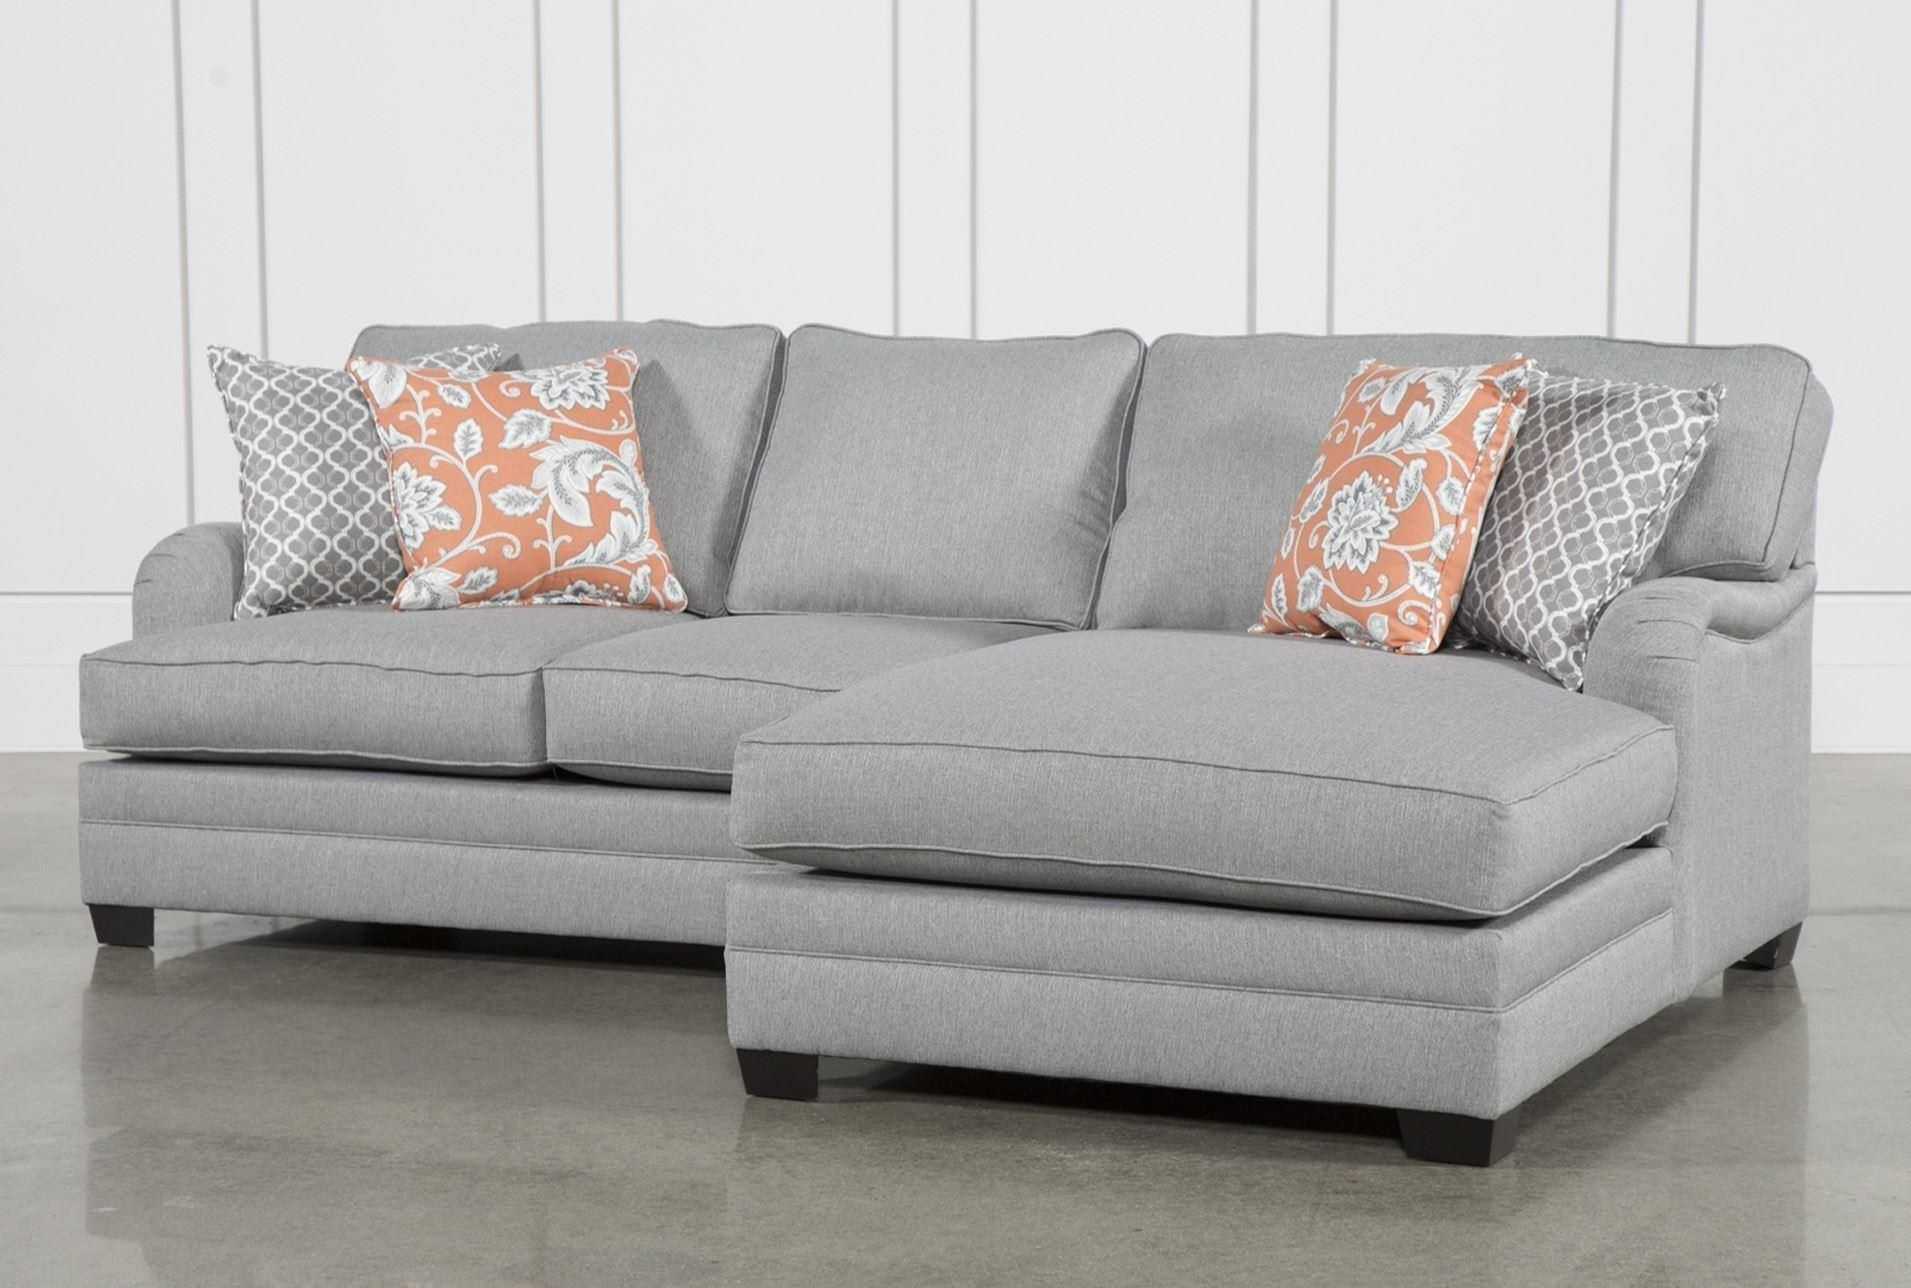 Marissa 2 Piece Sectional W/raf Chaise | Oakdell House | Pinterest Intended For Aspen 2 Piece Sleeper Sectionals With Raf Chaise (Image 17 of 25)